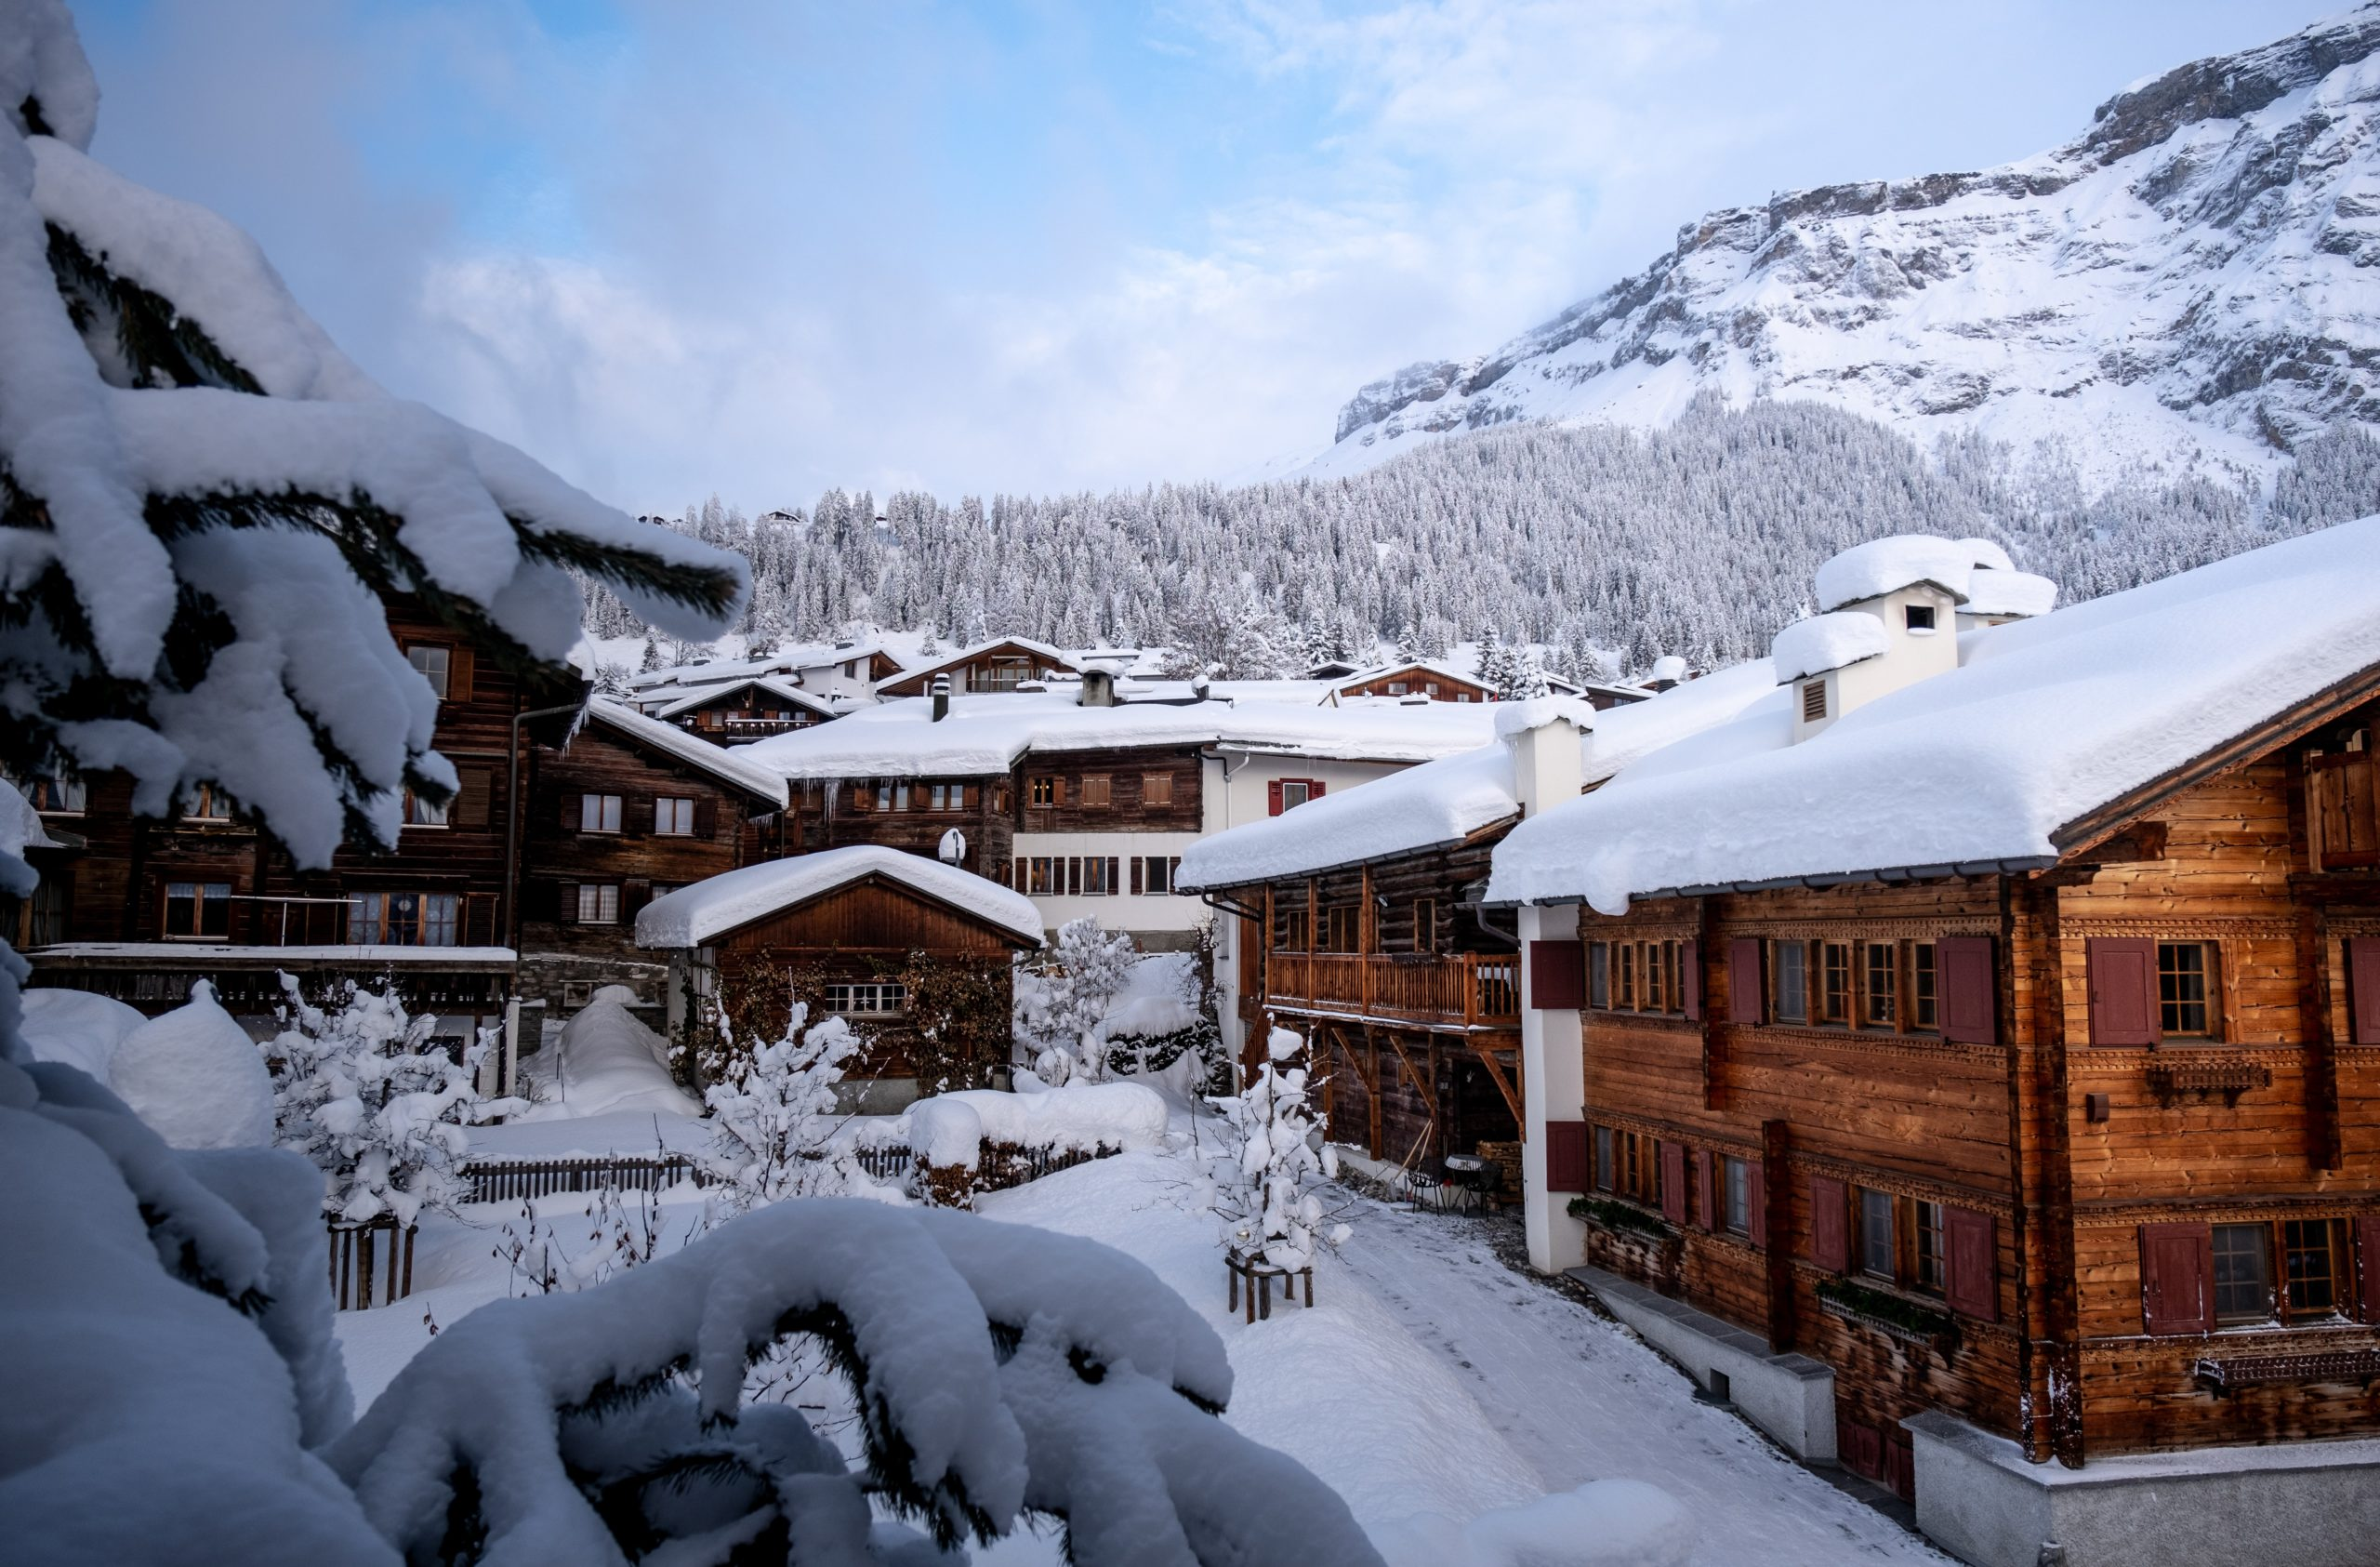 A row of wooden ski chalets covered in snow